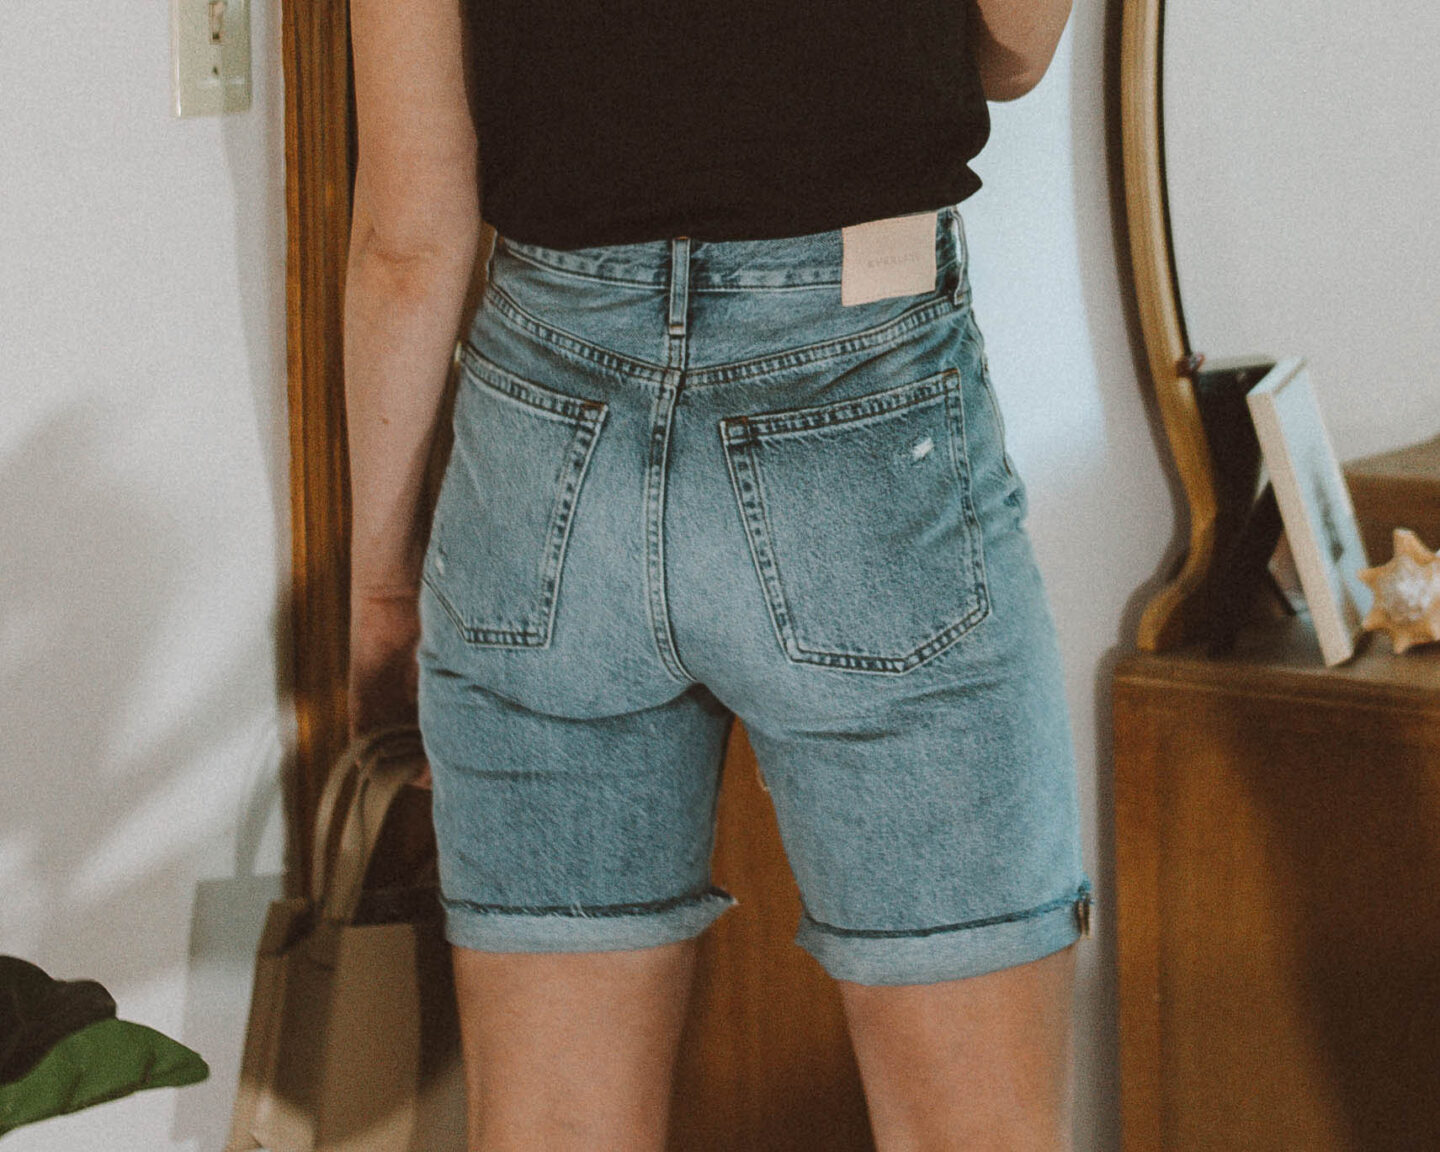 Everlane Shorts Guide: the 90's cheeky denim short